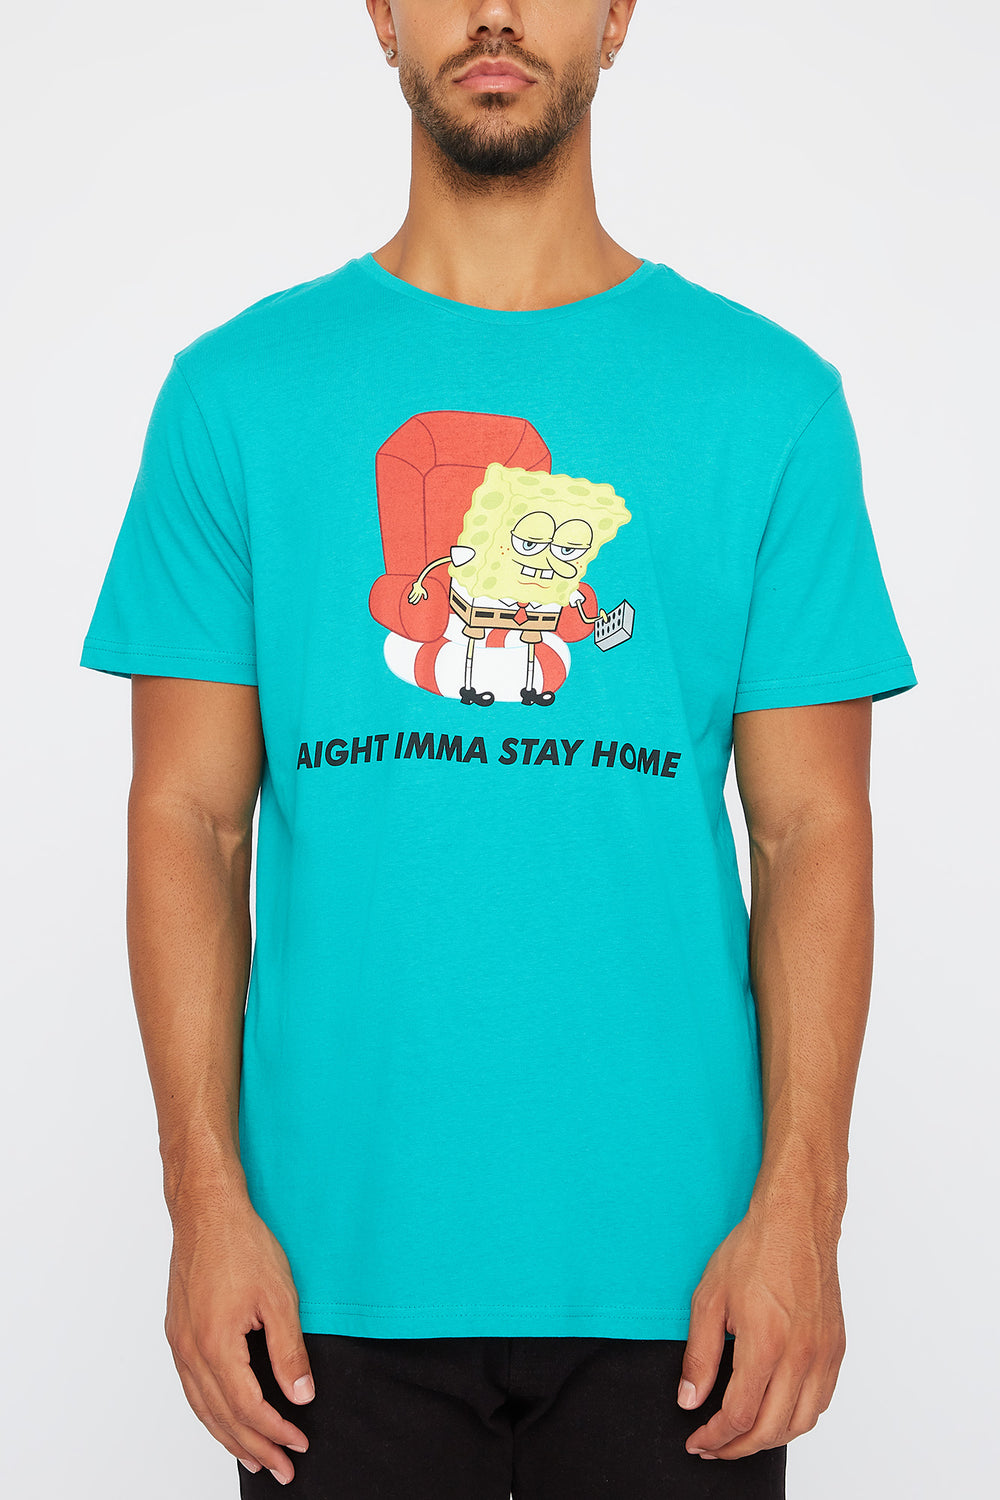 T-Shirt Imprimé SpongeBob Stay At Home Homme Turquoise